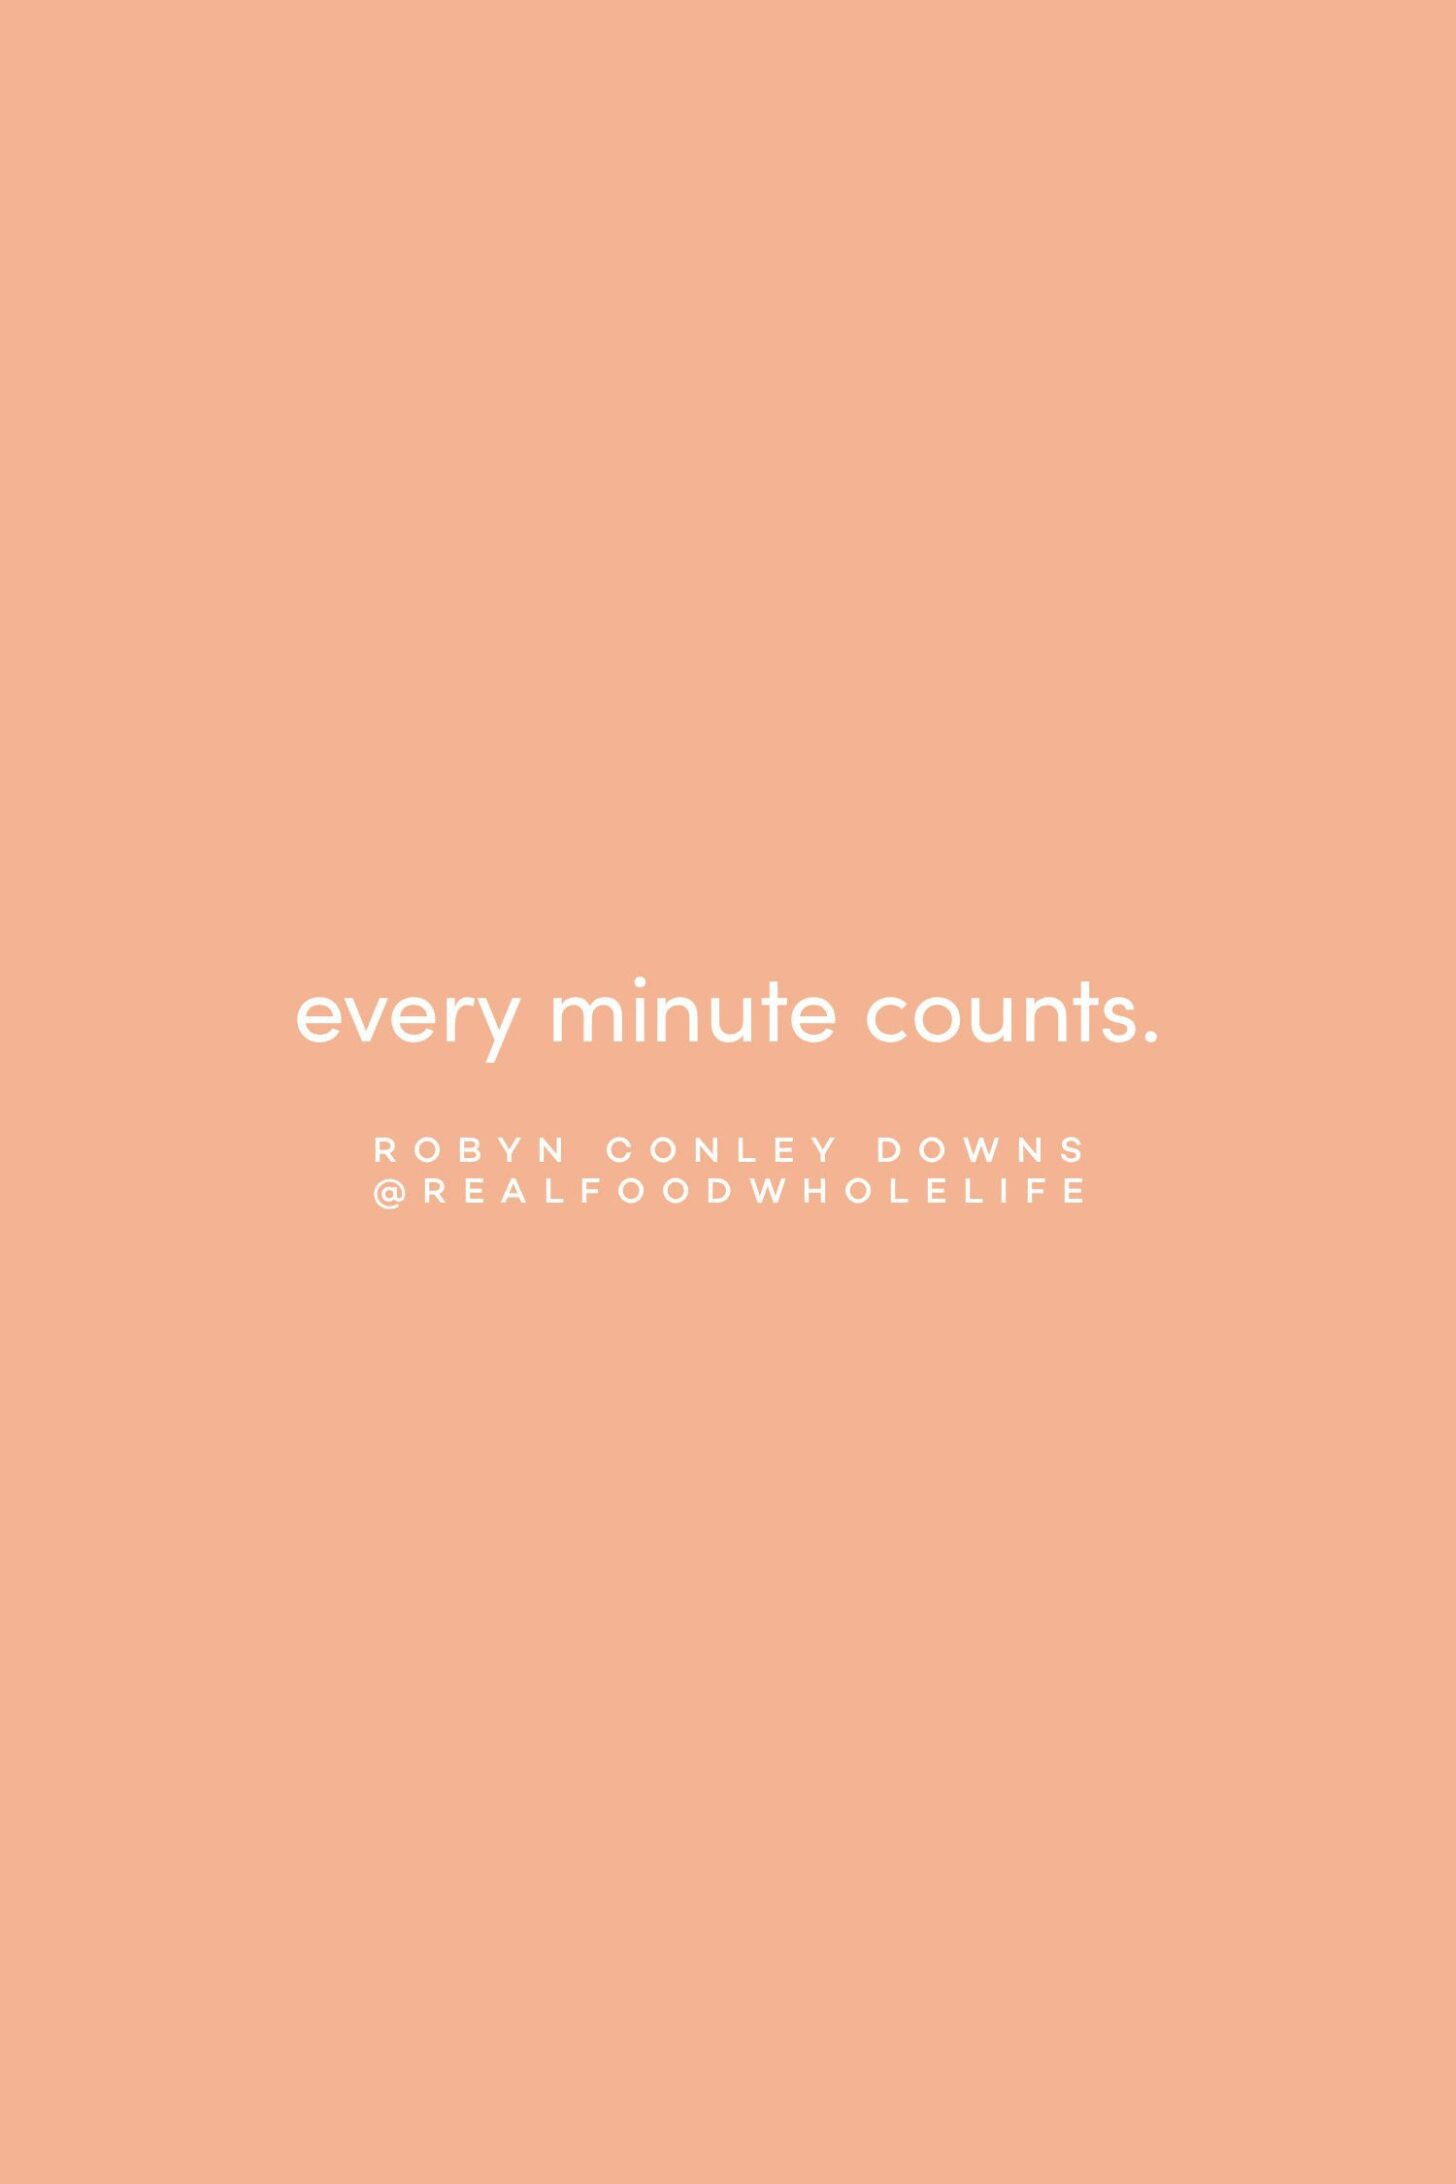 Quote on every minute counting by Robyn Conley Downs on the Feel Good Effect Podcast #realfoodwholelife #feelgoodeffectpodcast #motivationalquote #inspirationalquote #positivityquote #wellnessquote #routinesquote #selfcarequote #selfcompassionquote